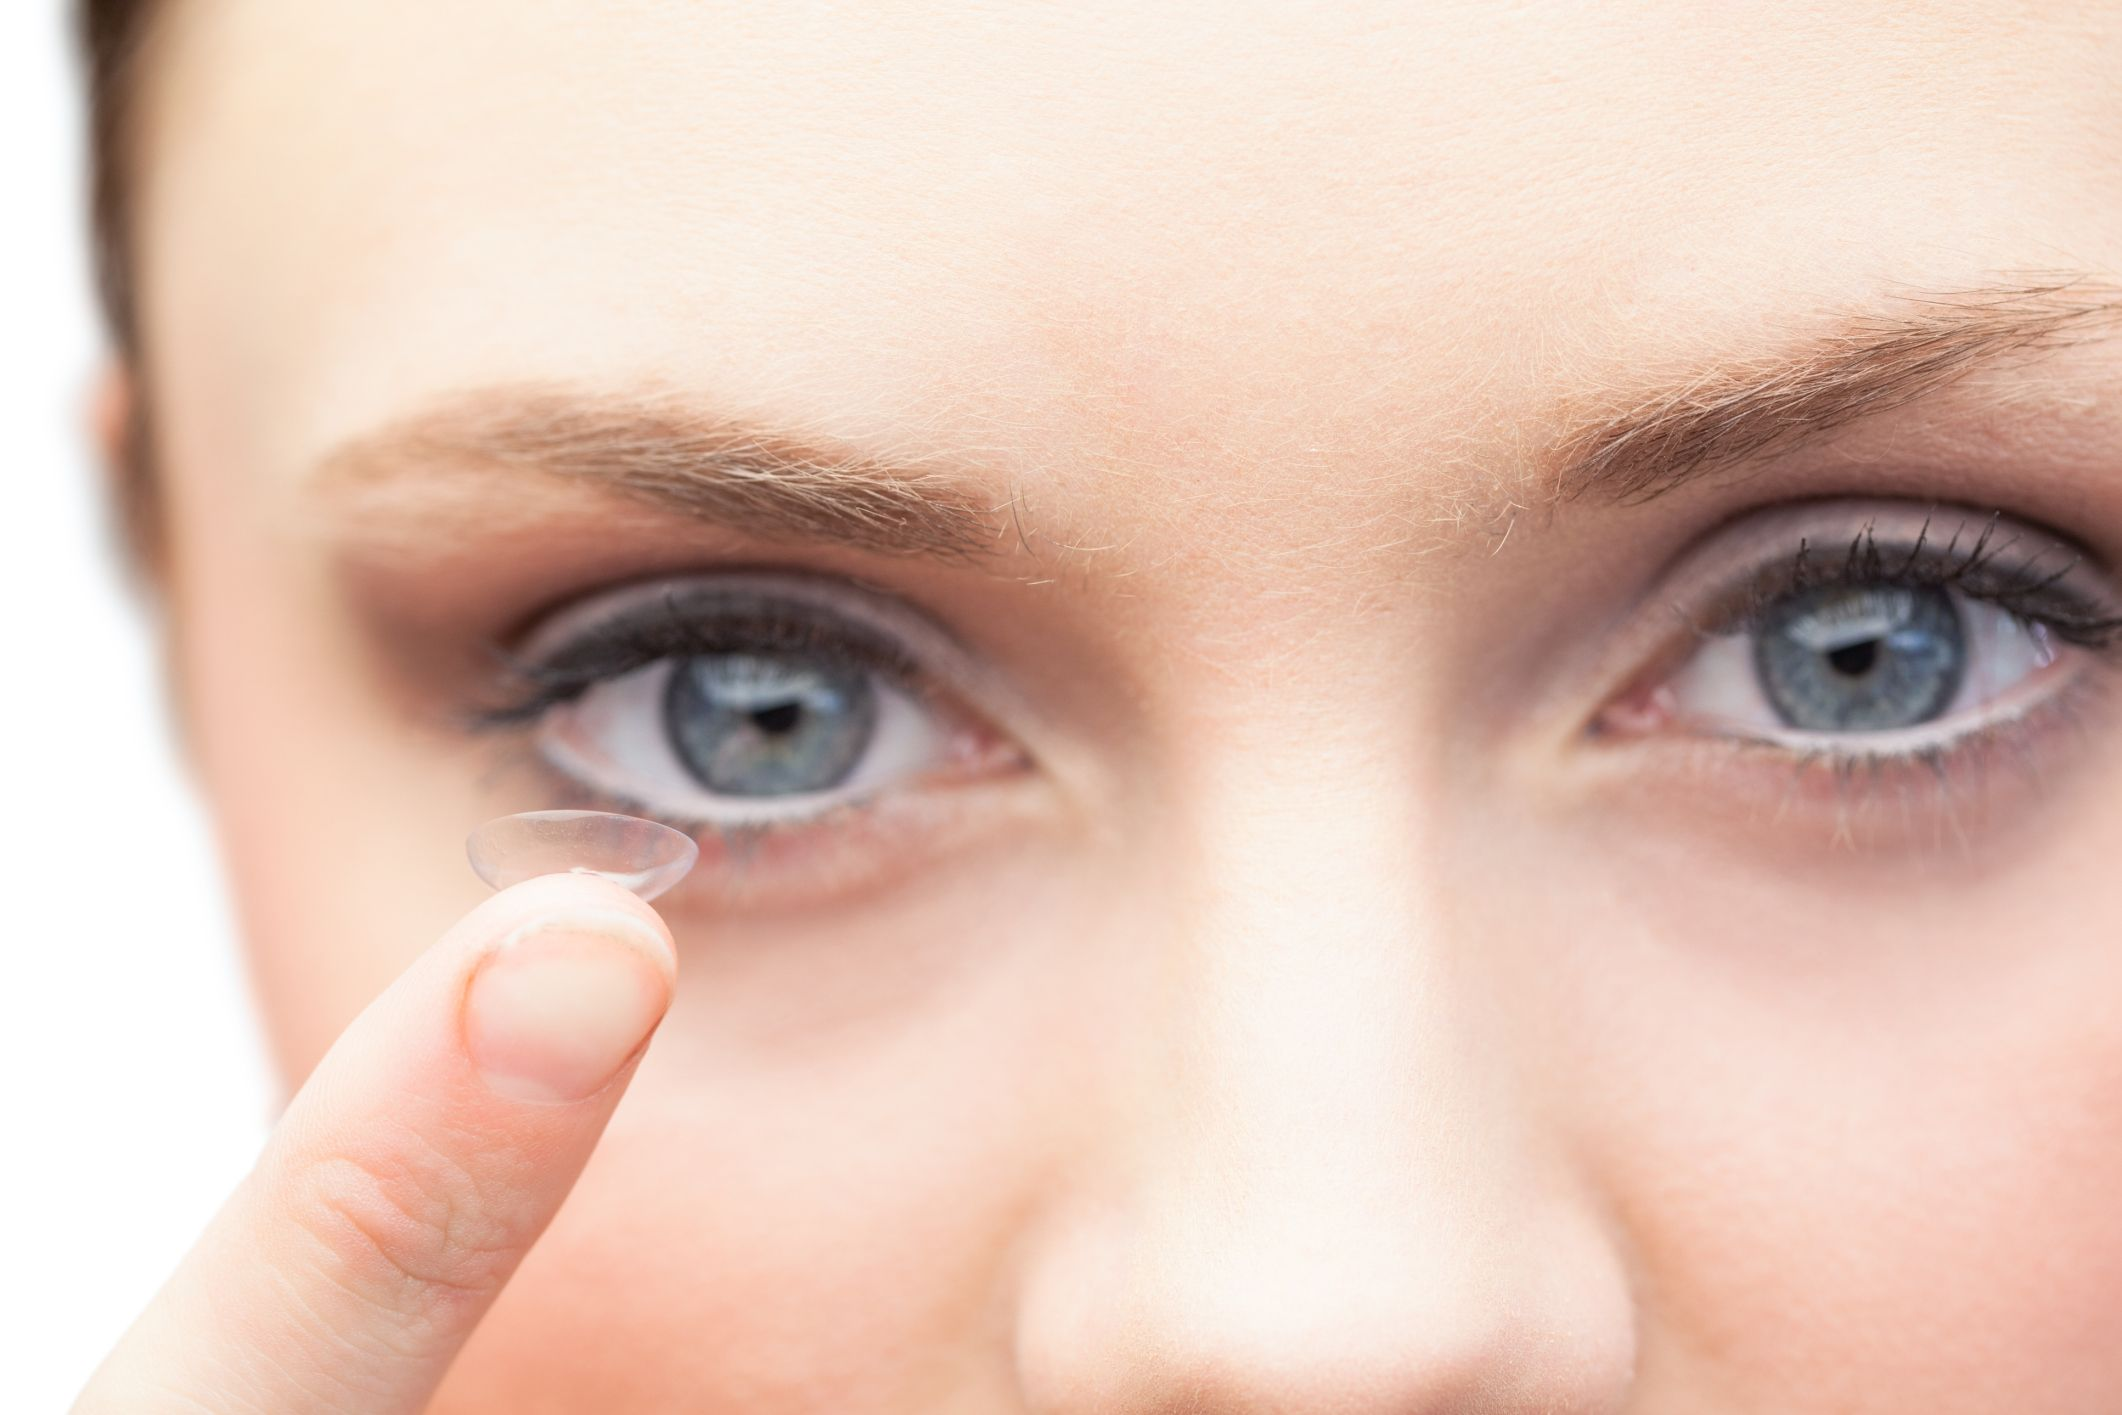 Take Your Contacts Out…Or Else You Might Go Blind - Read More at SpryLiving.com